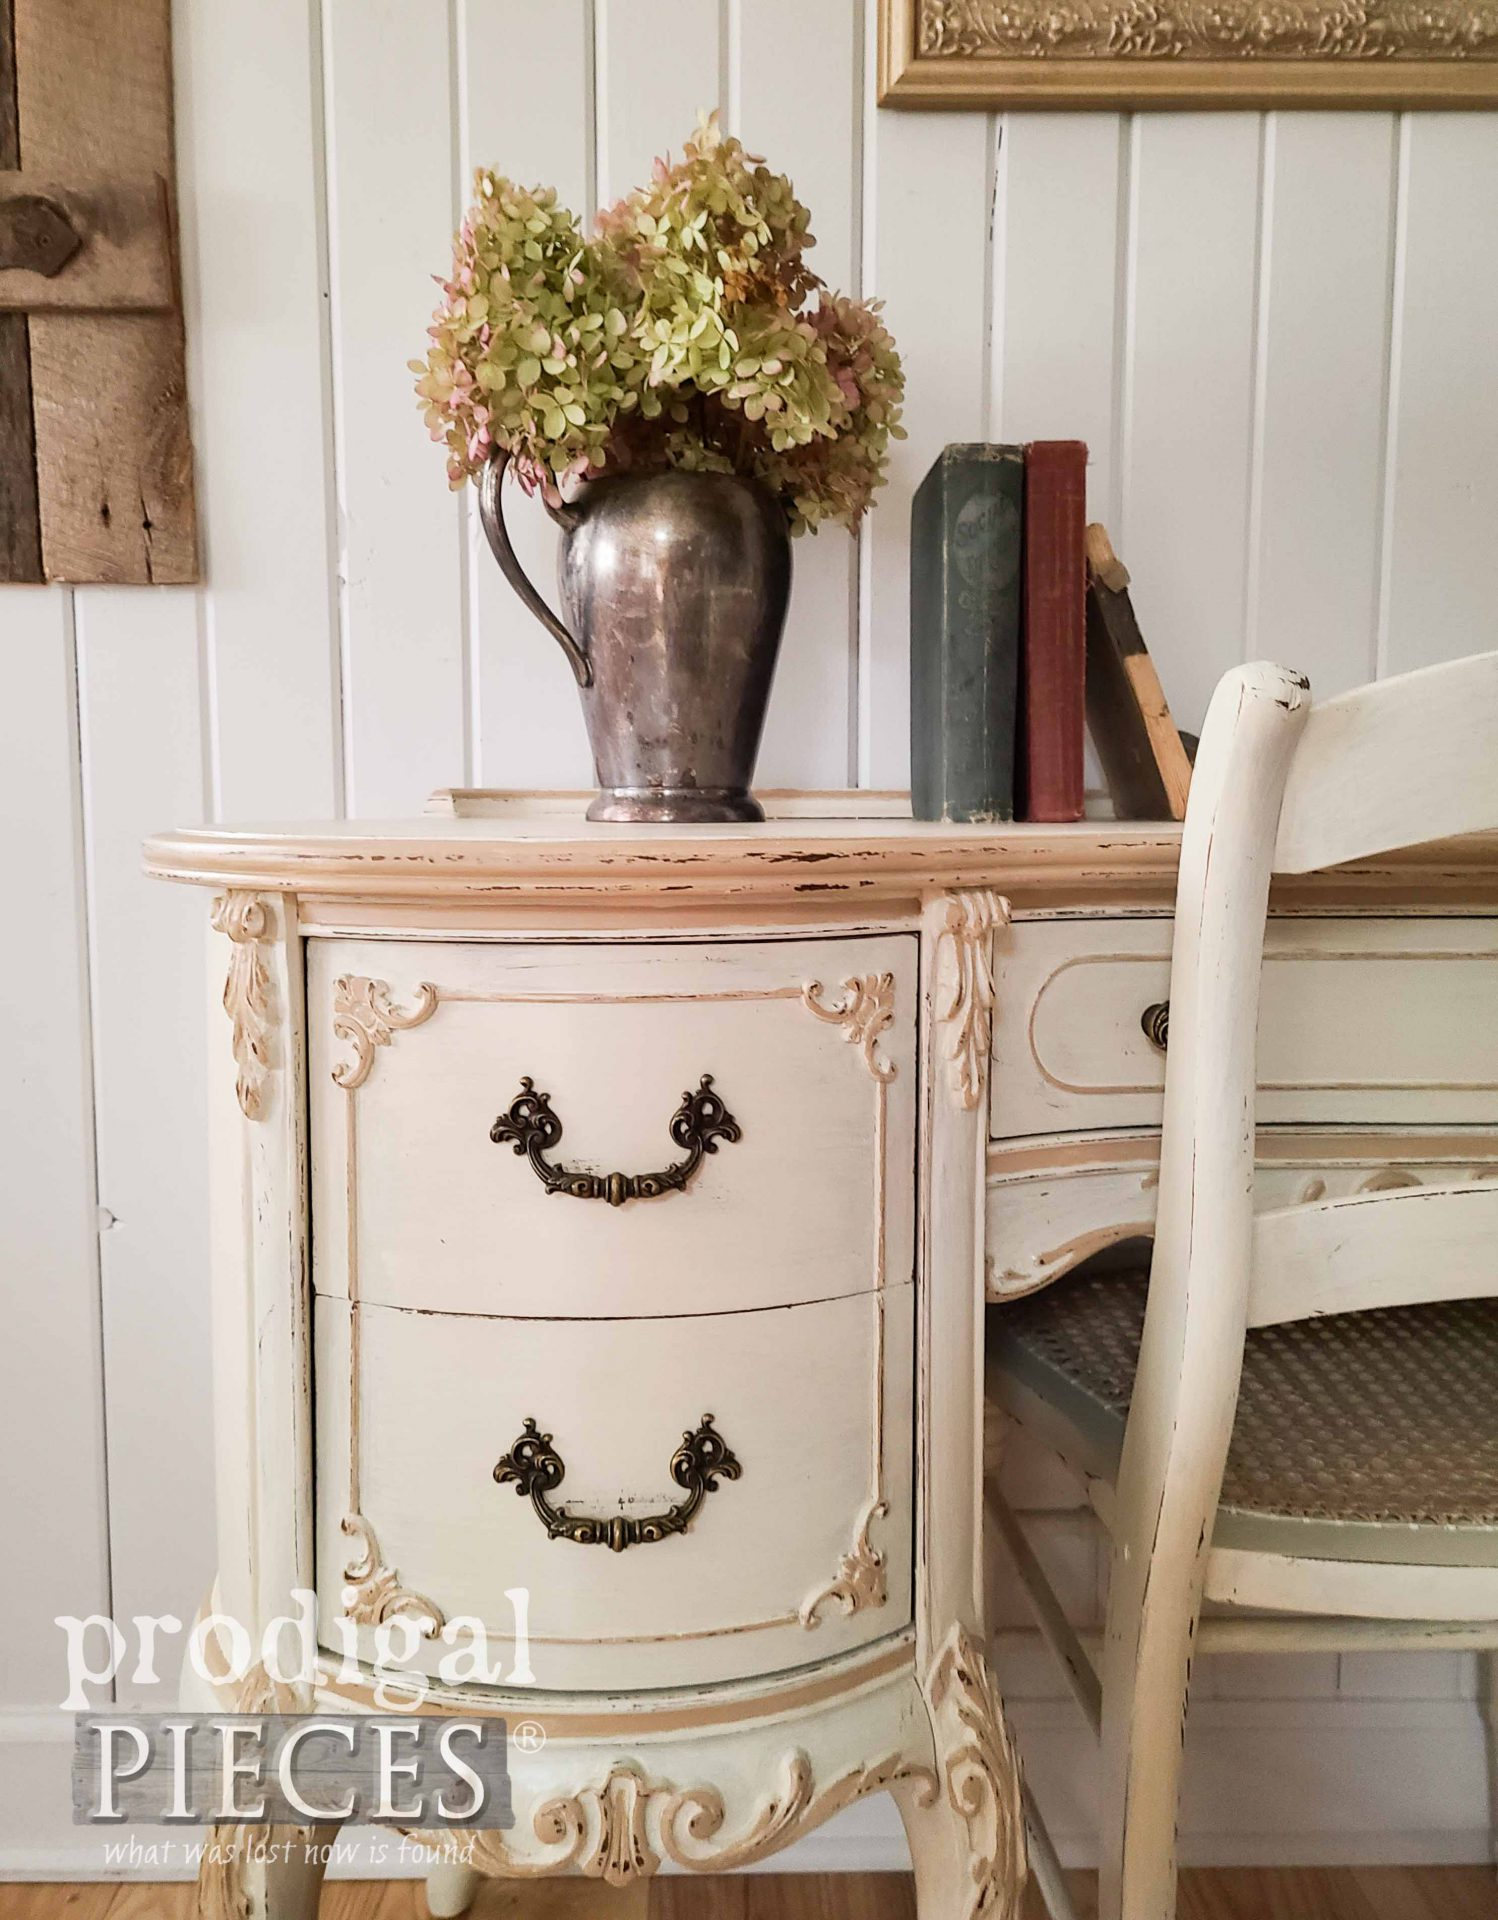 French Provincial Desk Drawers with Ornate Details by Larissa of Prodigal Pieces | prodigalpieces.com #prodigalpieces #furniture #home #homedecor #vintage #frenchprovincial